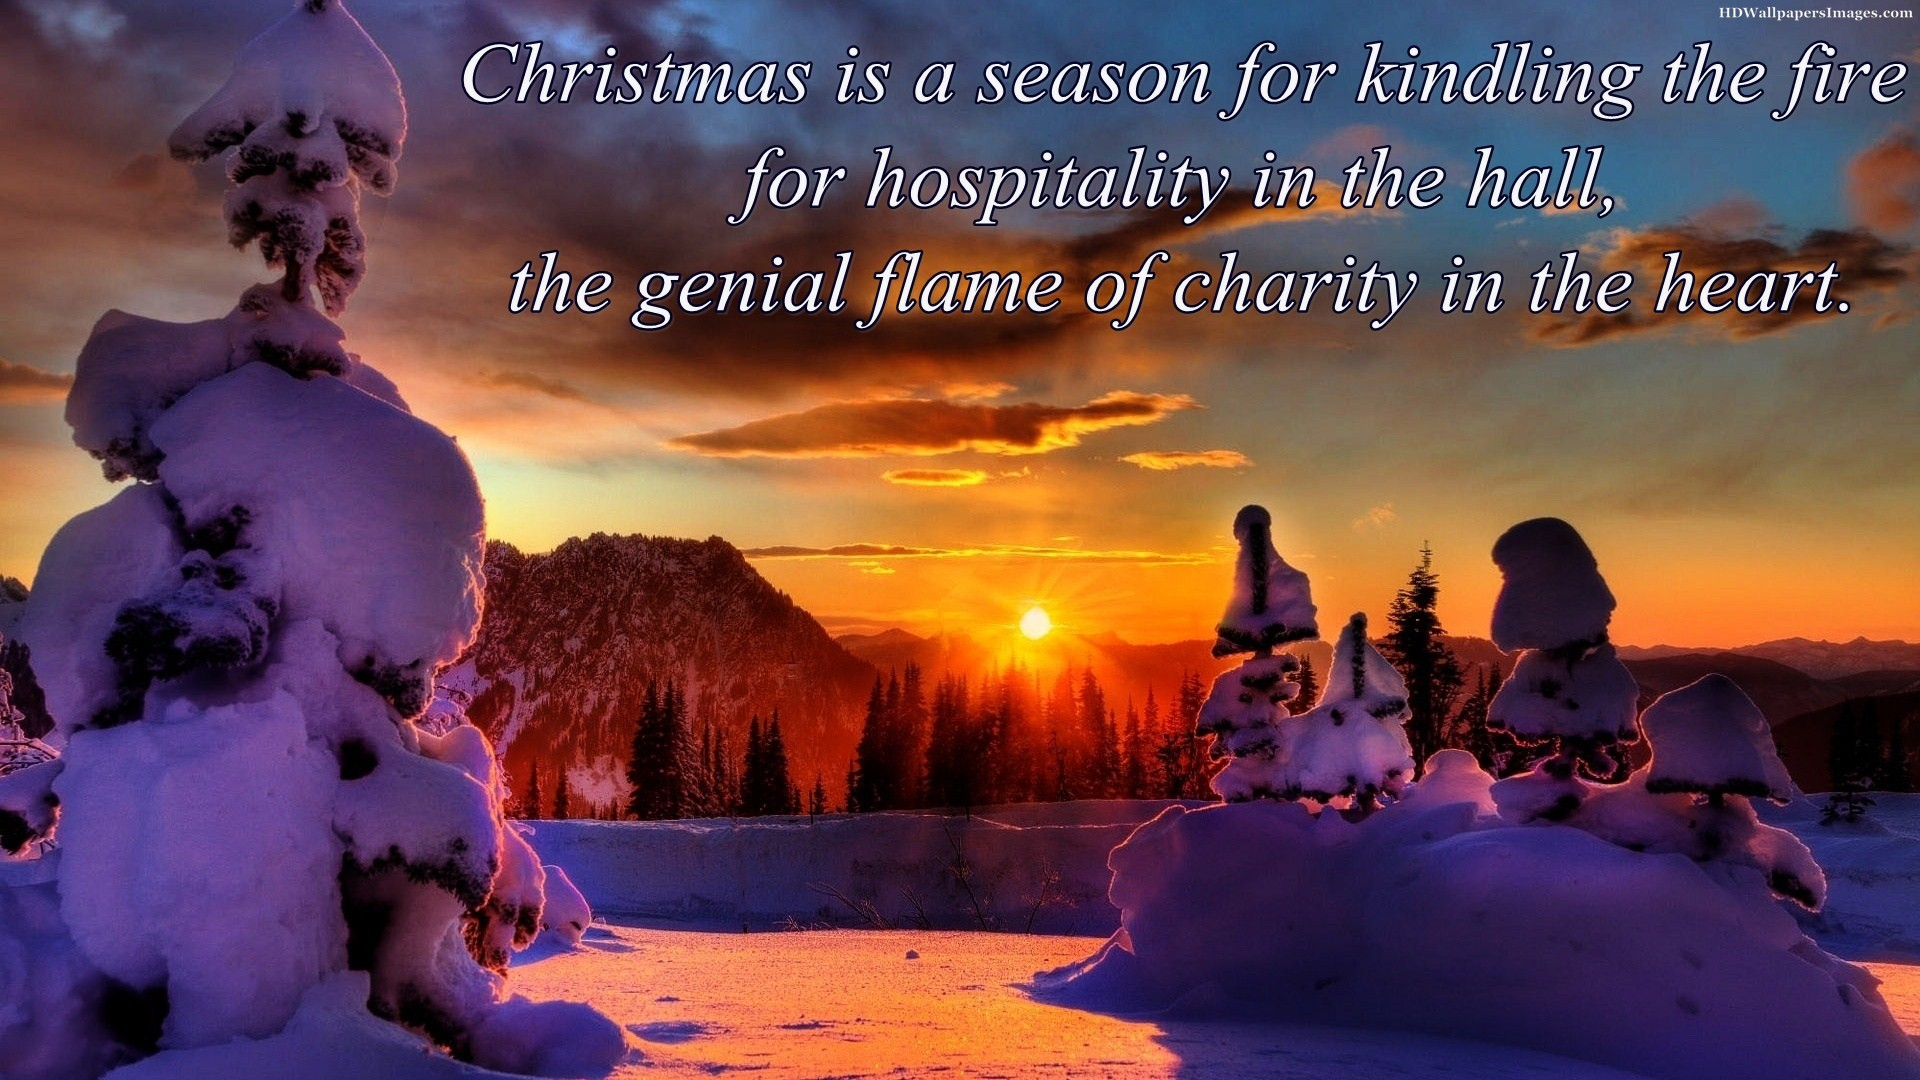 Christmas List Quotes Quotesgram: Beautiful Christmas Quotes. QuotesGram